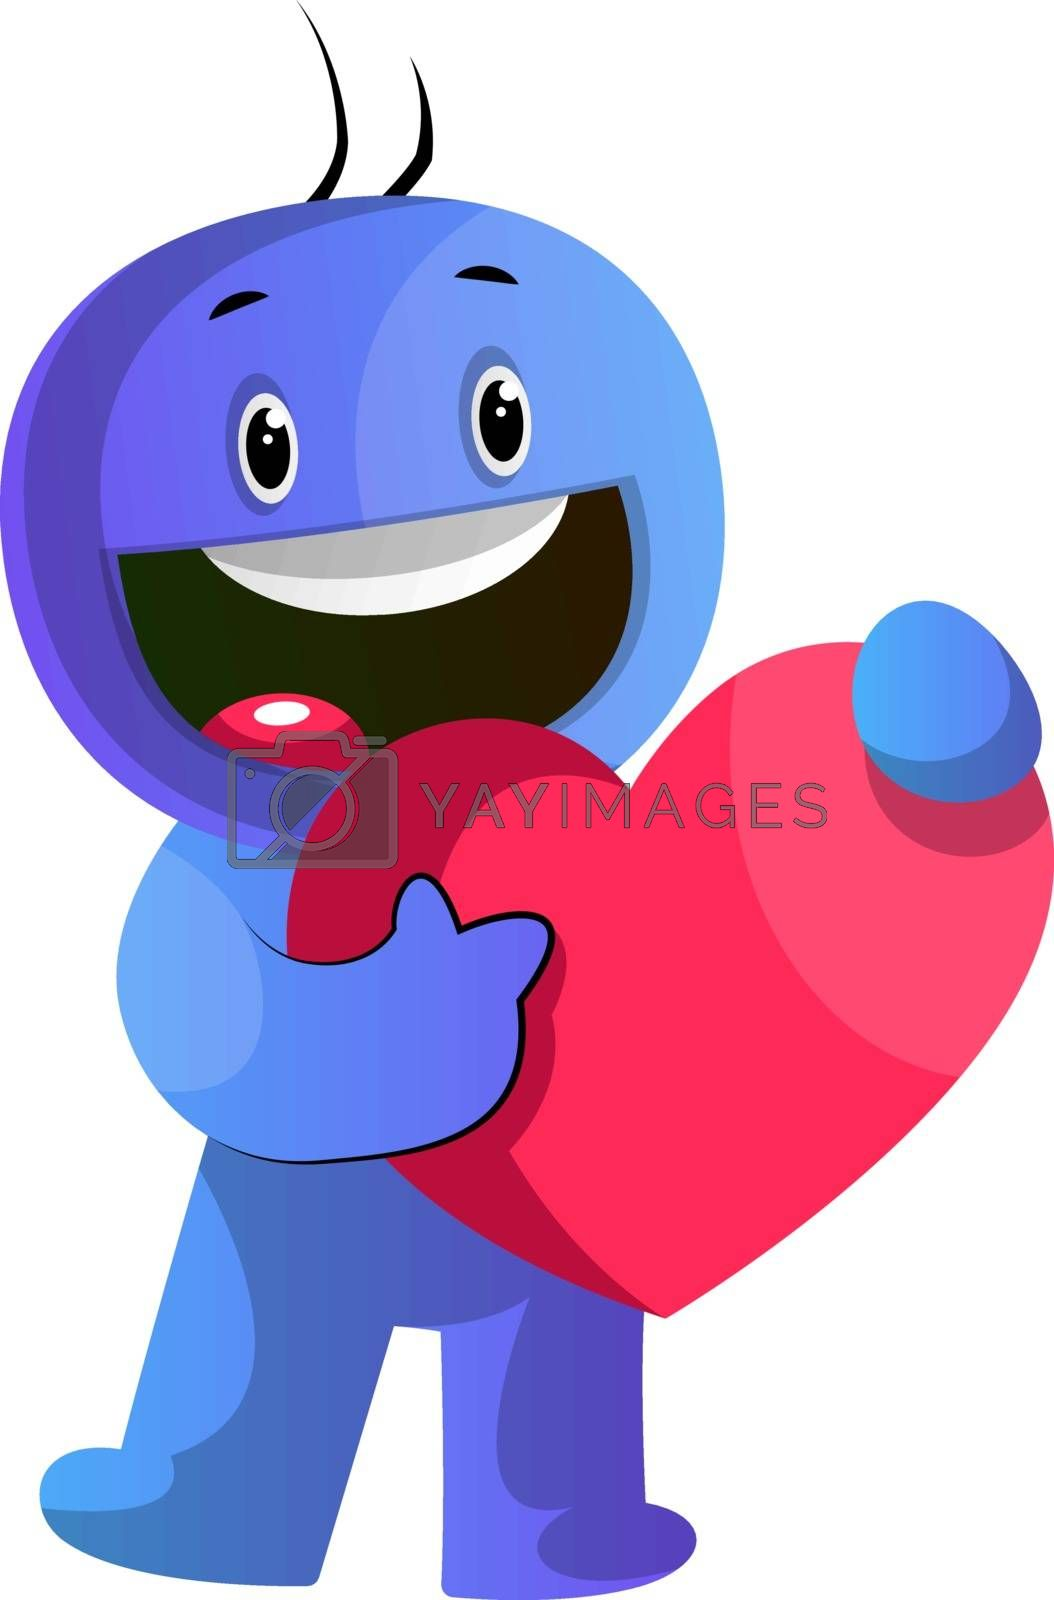 Royalty free image of Blue cartoon caracter holding a big red heart illustration vecto by Morphart